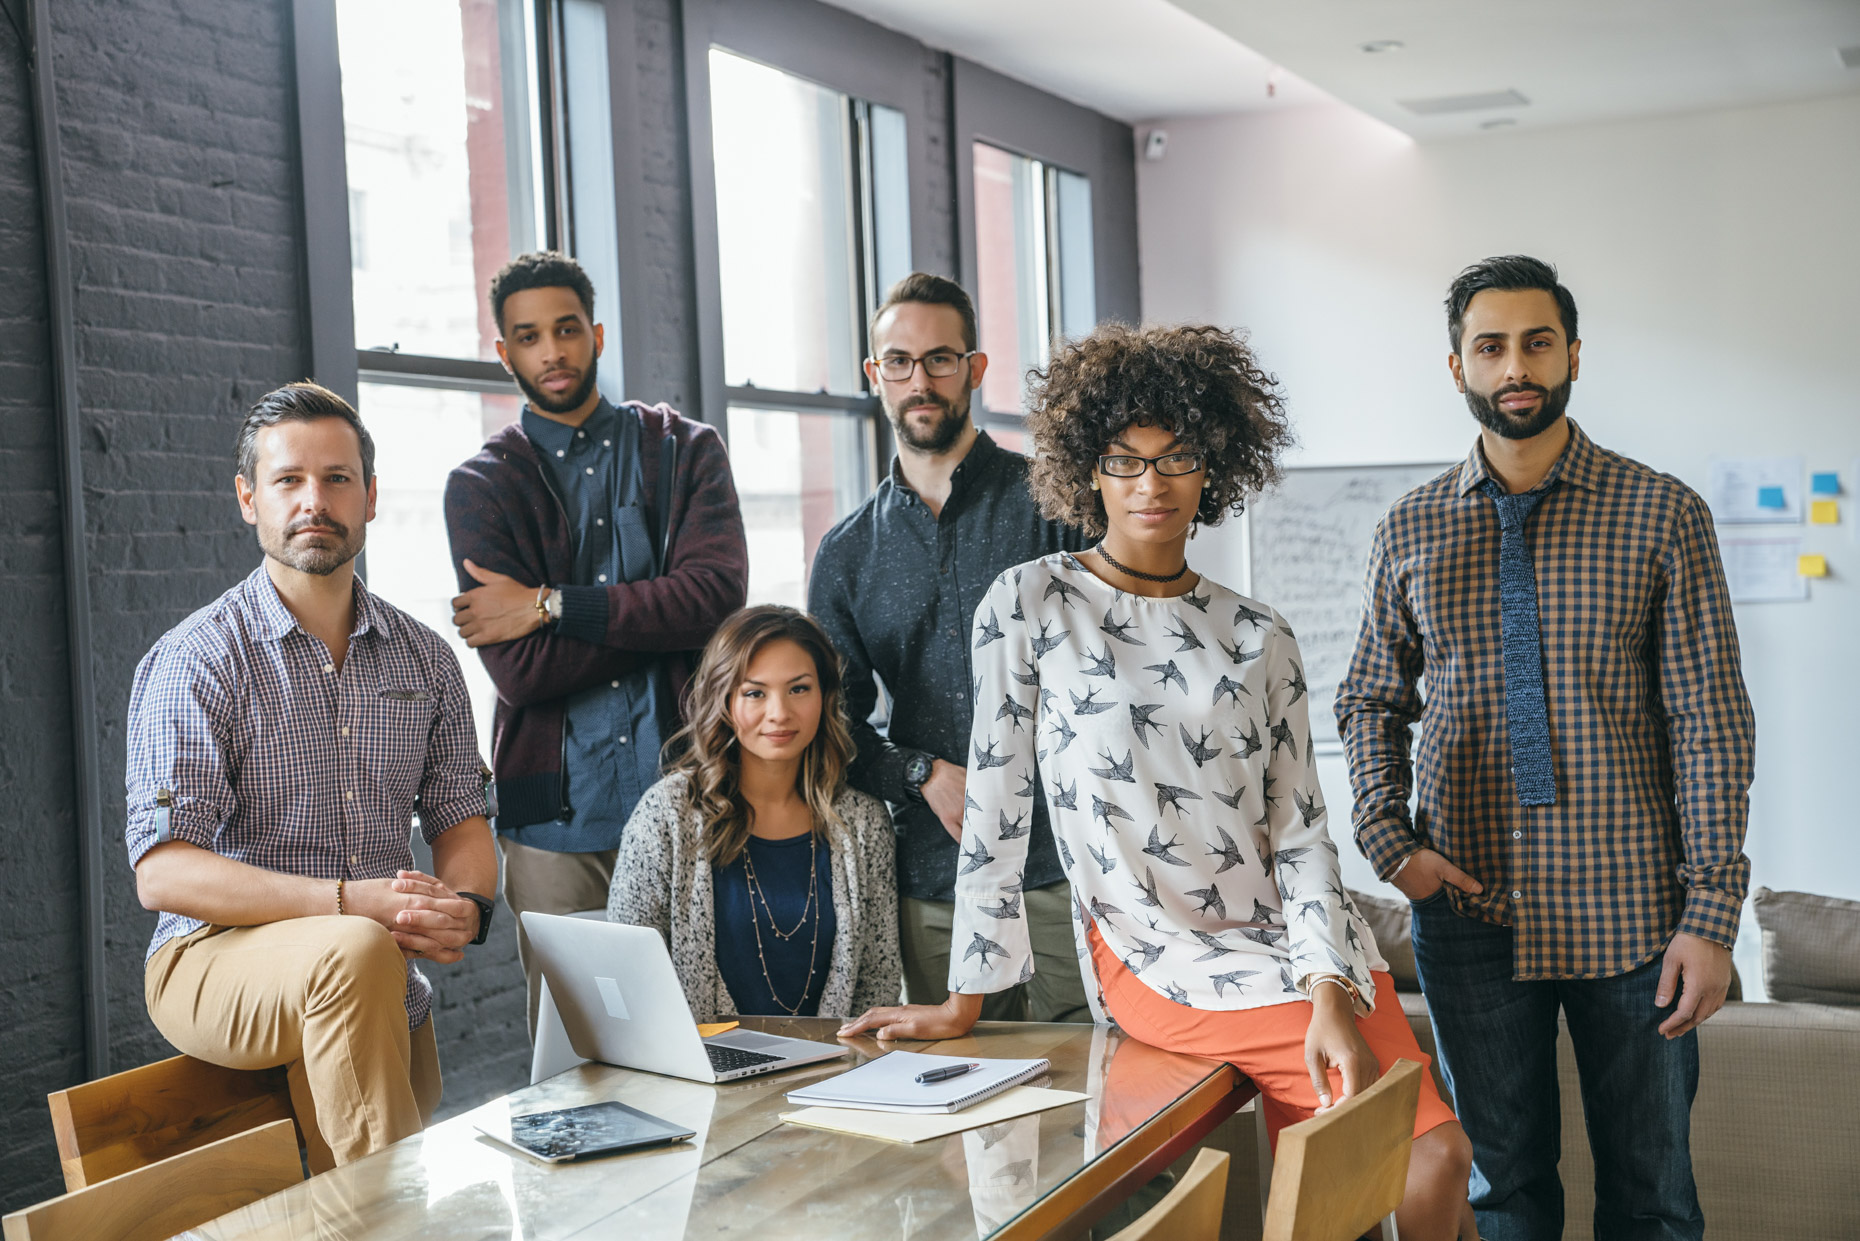 Diverse group of millennial coworkers in office